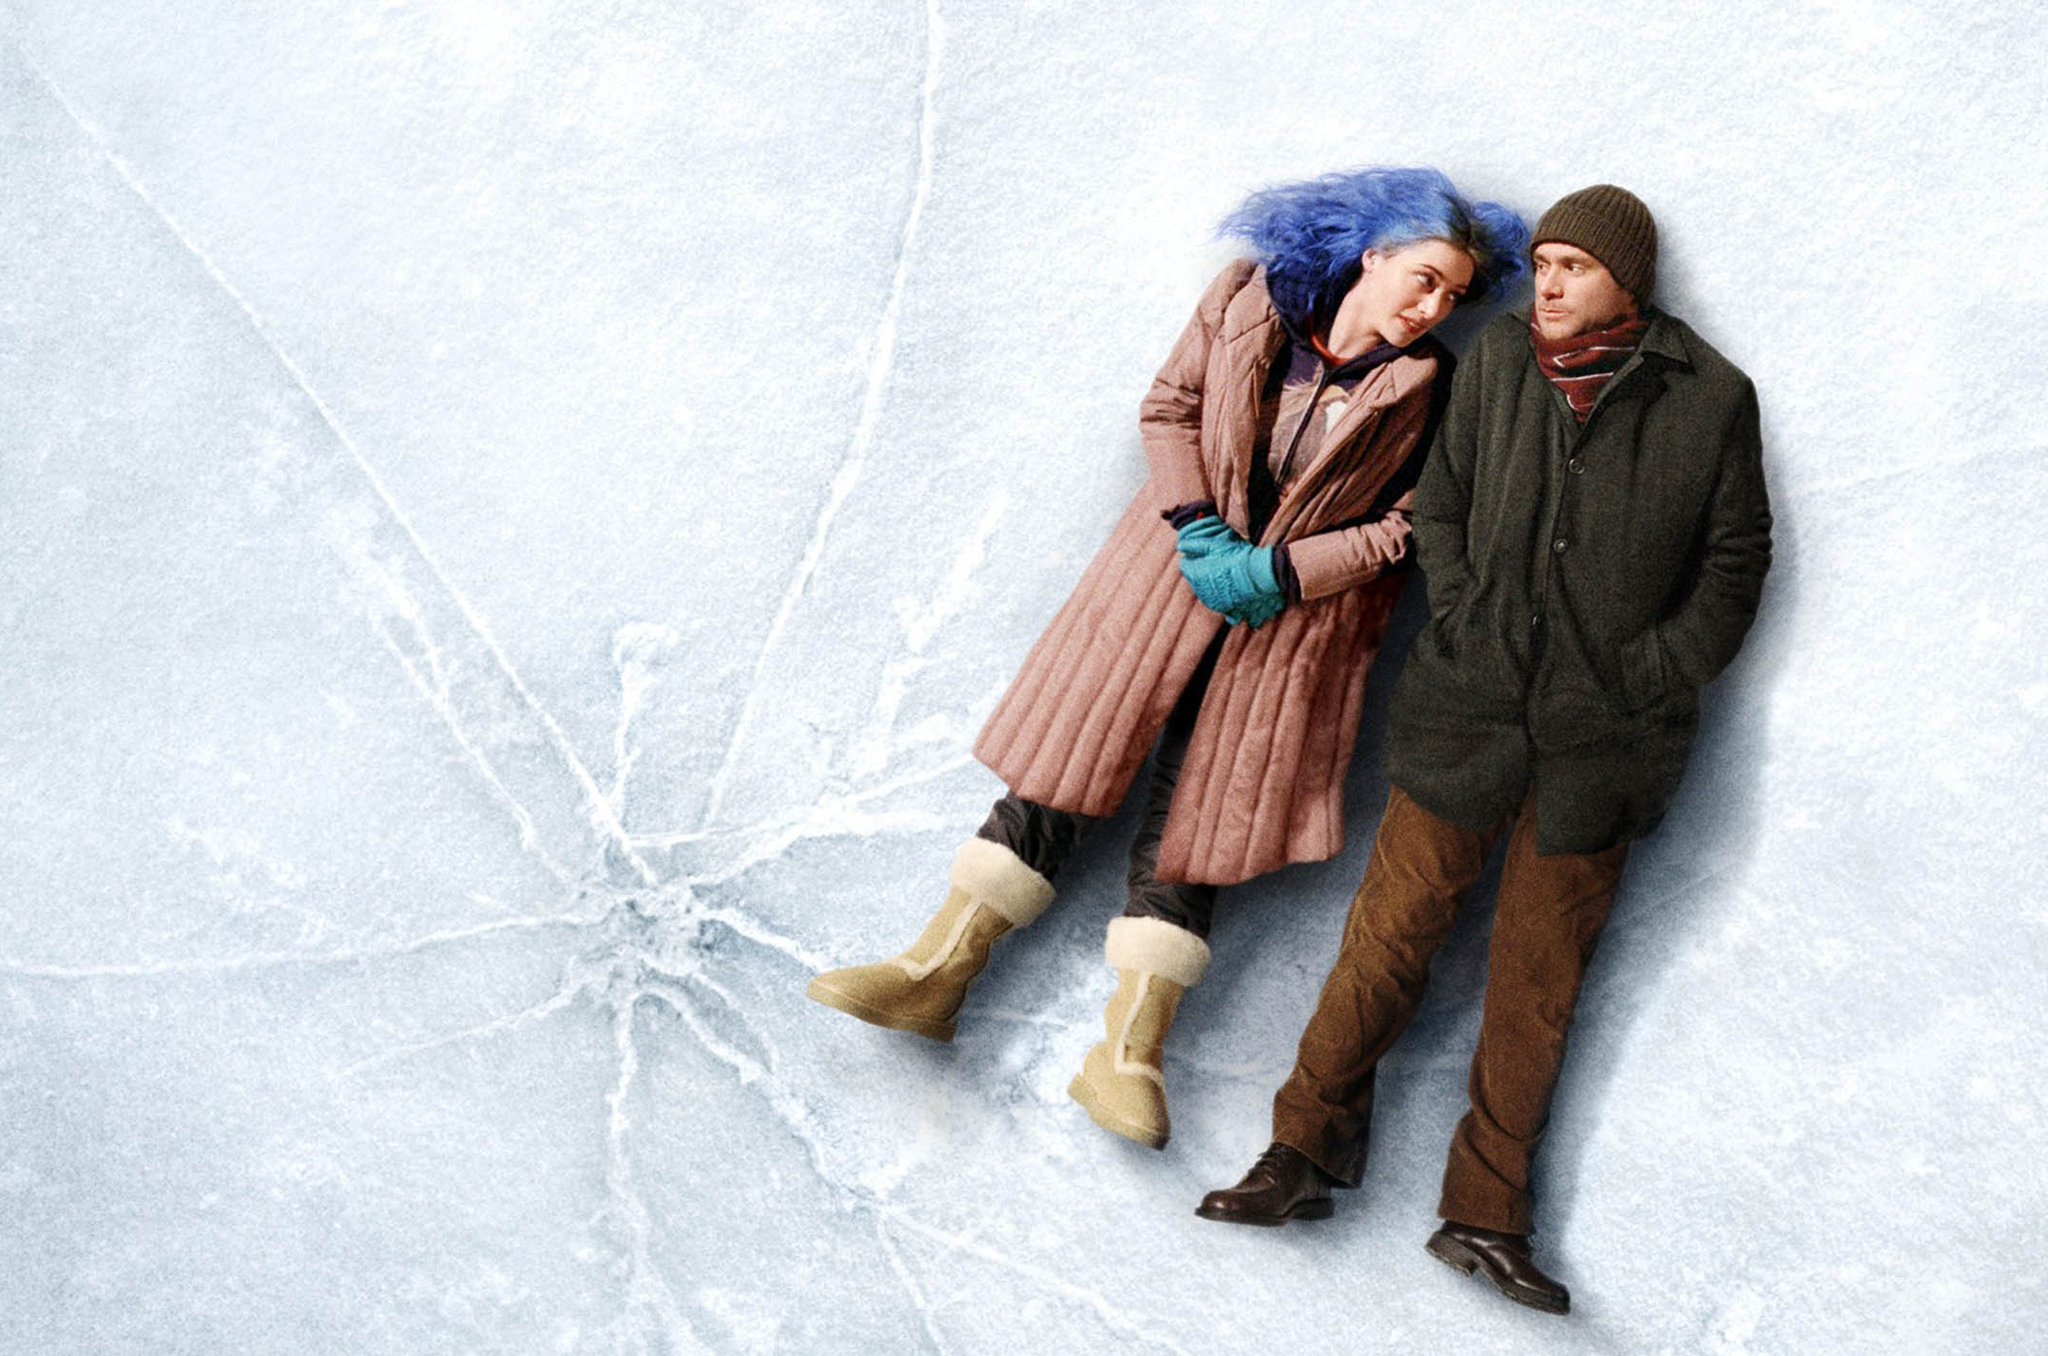 Sci-fi movie: Eternal Sunshine of the Spotless Mind